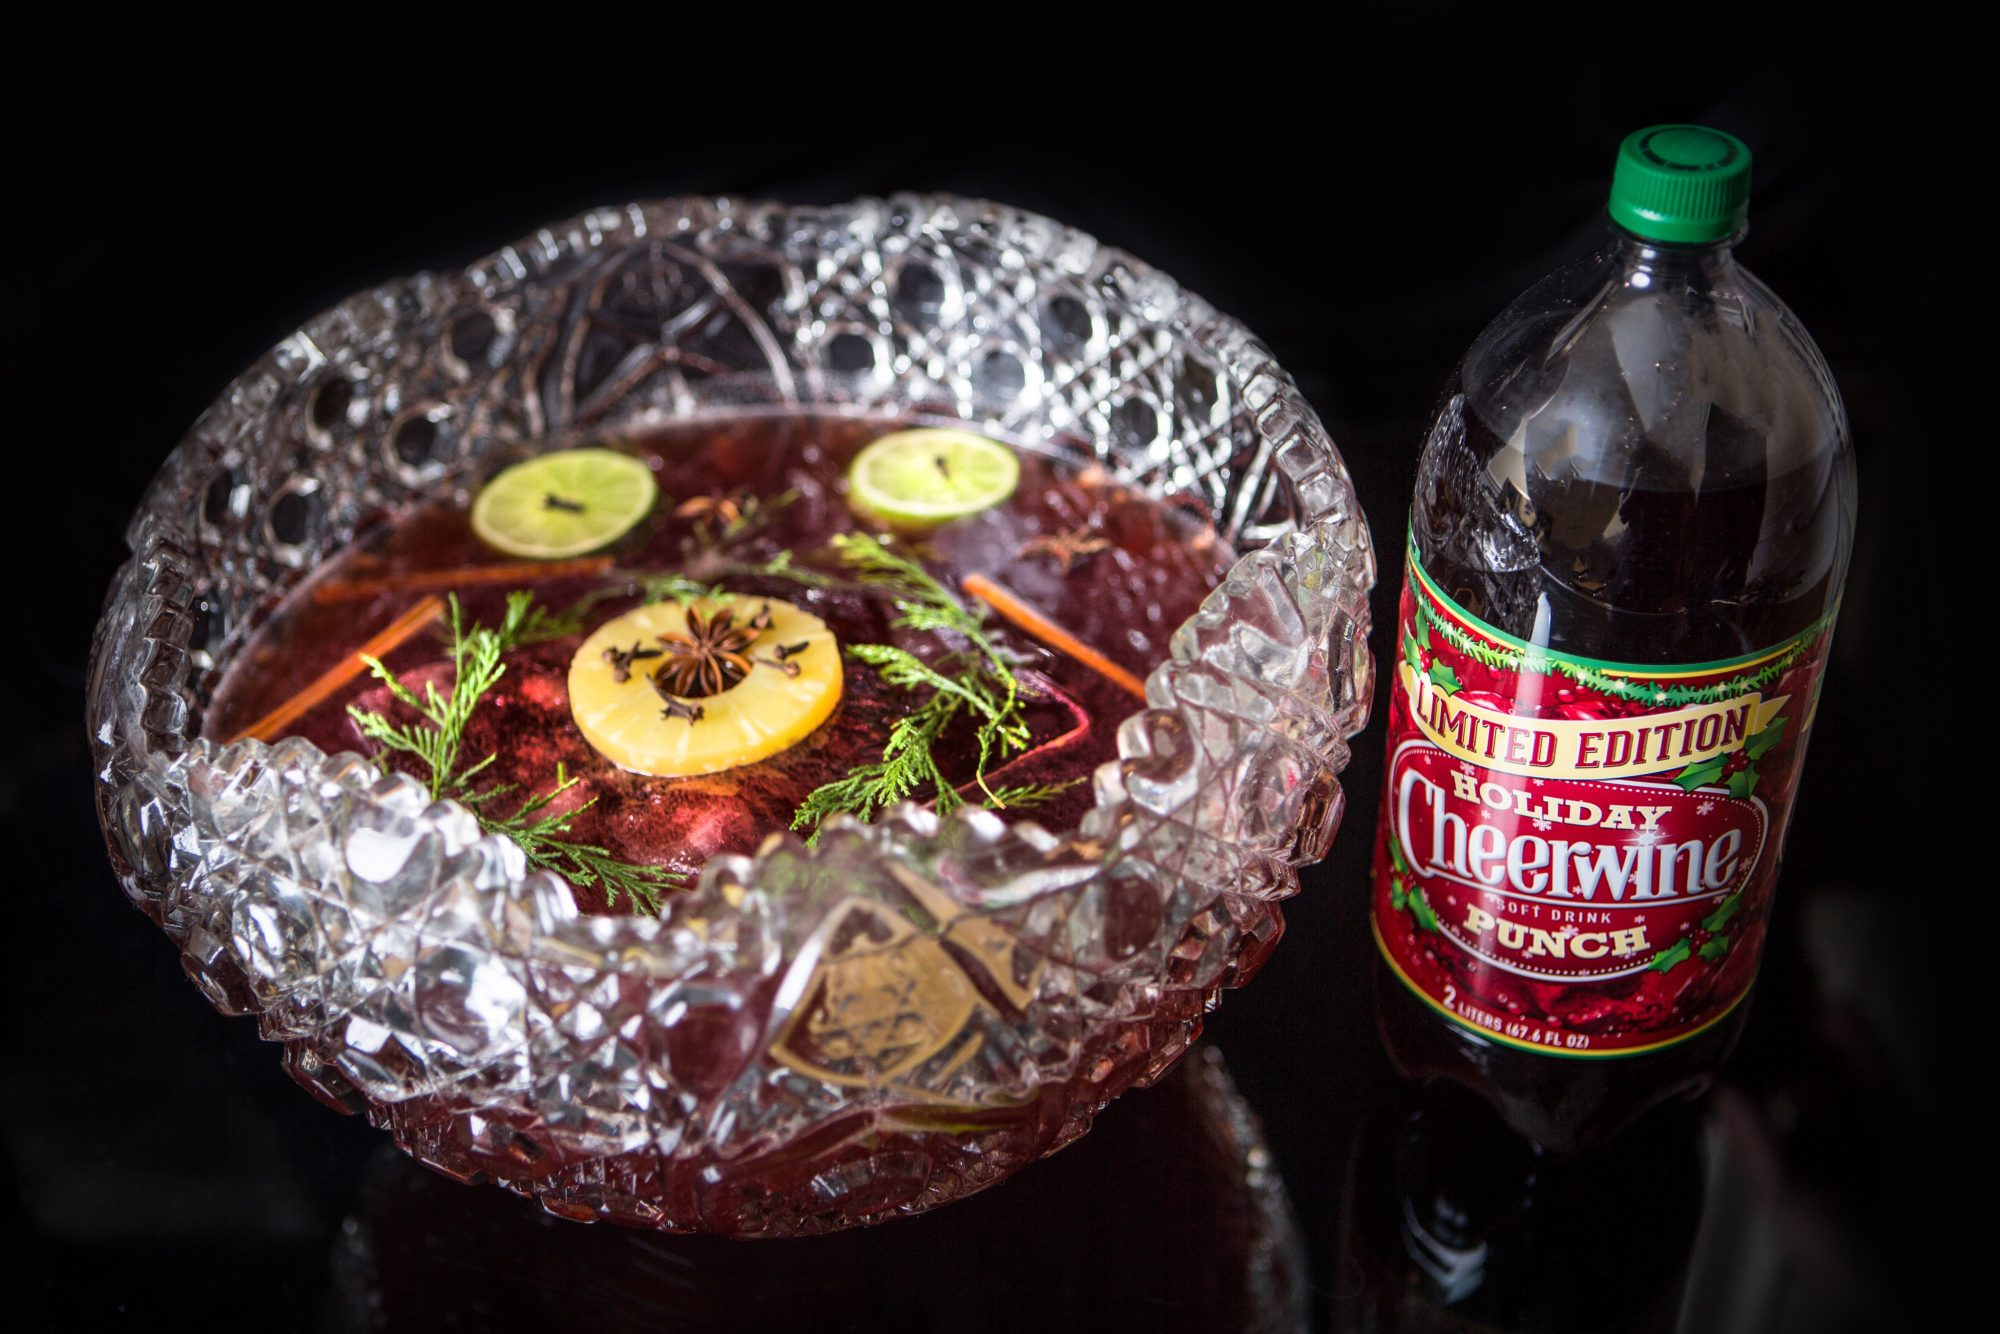 Cheerwine Holiday Punch Photo